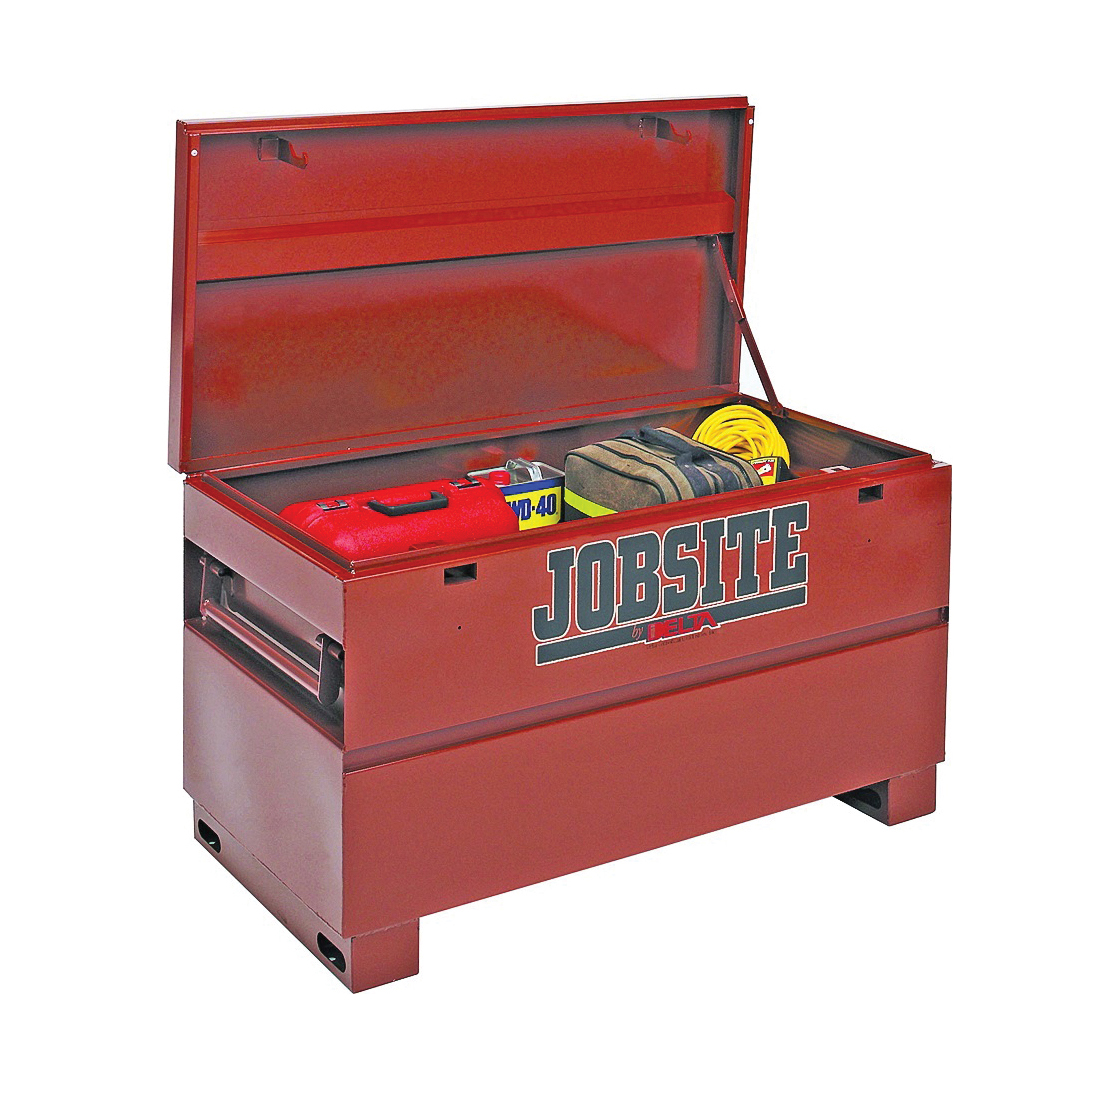 Picture of DELTA JOBSITE 638990 Heavy-Duty Contractor Chest, 19.3 cu-ft, 24 in OAW, 27-3/4 in OAH, 60 in OAD, Steel, Brown